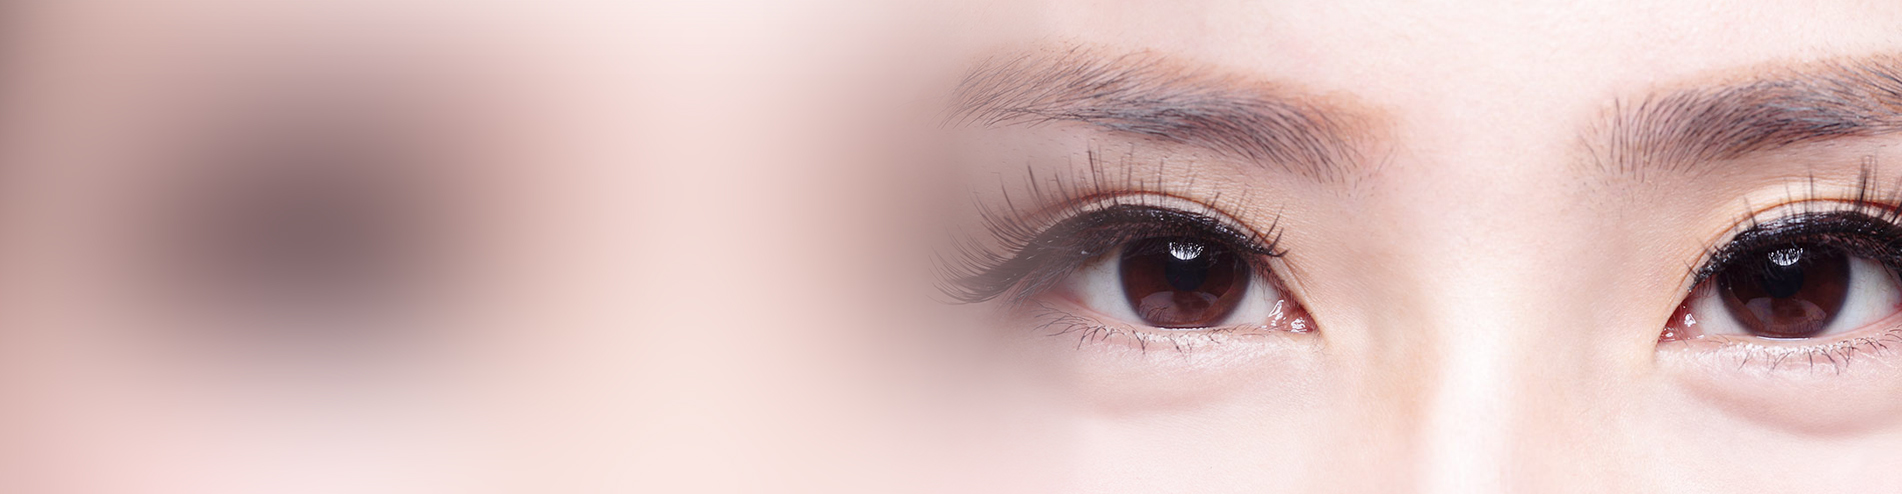 Asian Blepharoplasty - before and after female